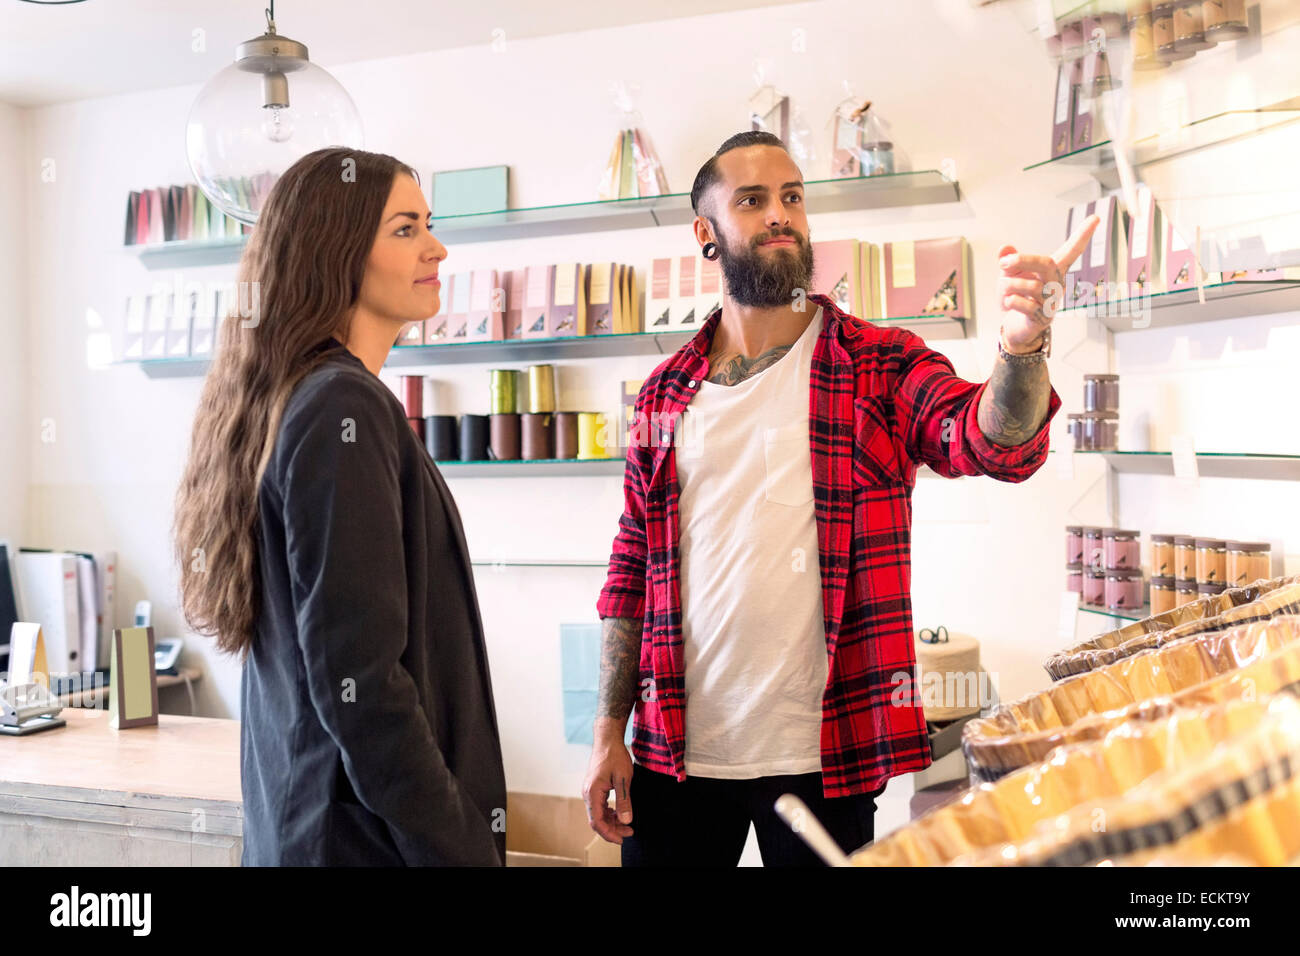 Owner showing products to customer in candy store - Stock Image